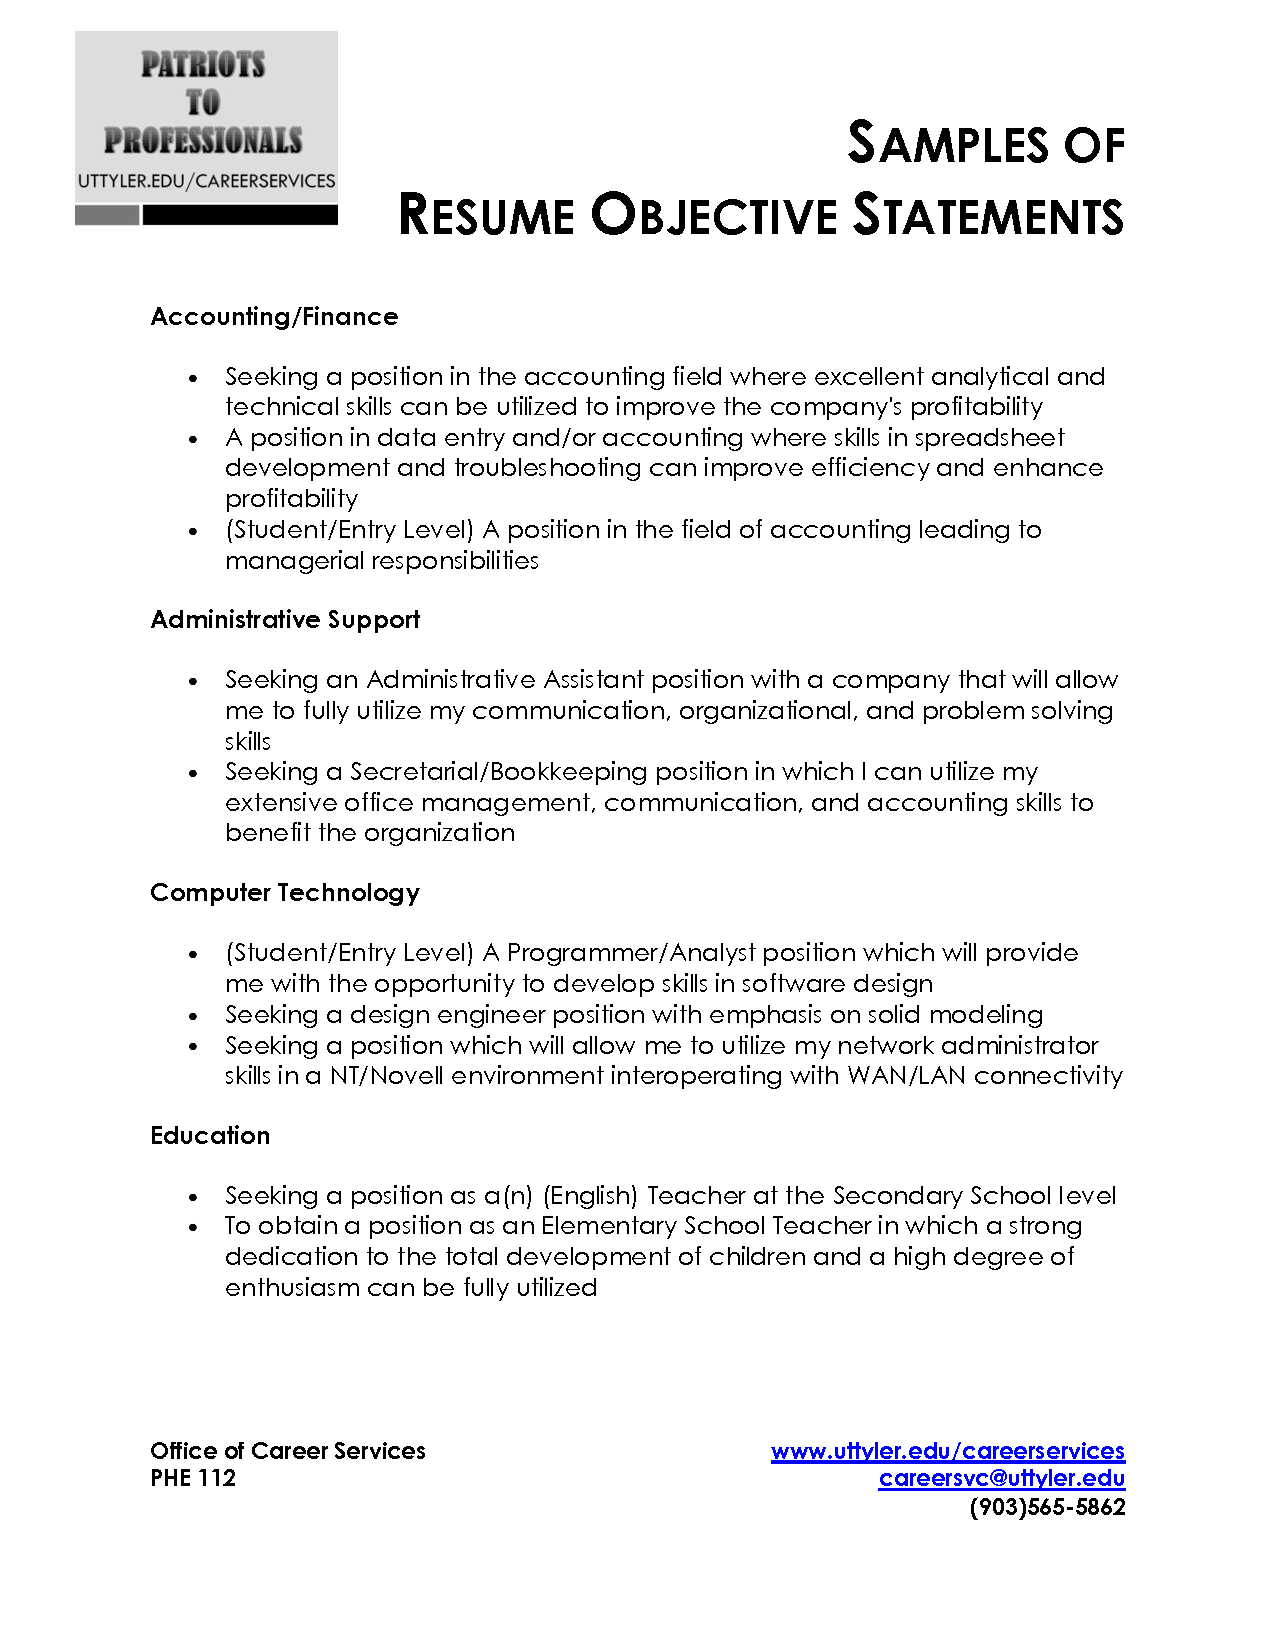 Accounting Internship Resume Objective Mardiyono Semair85 On Pinterest